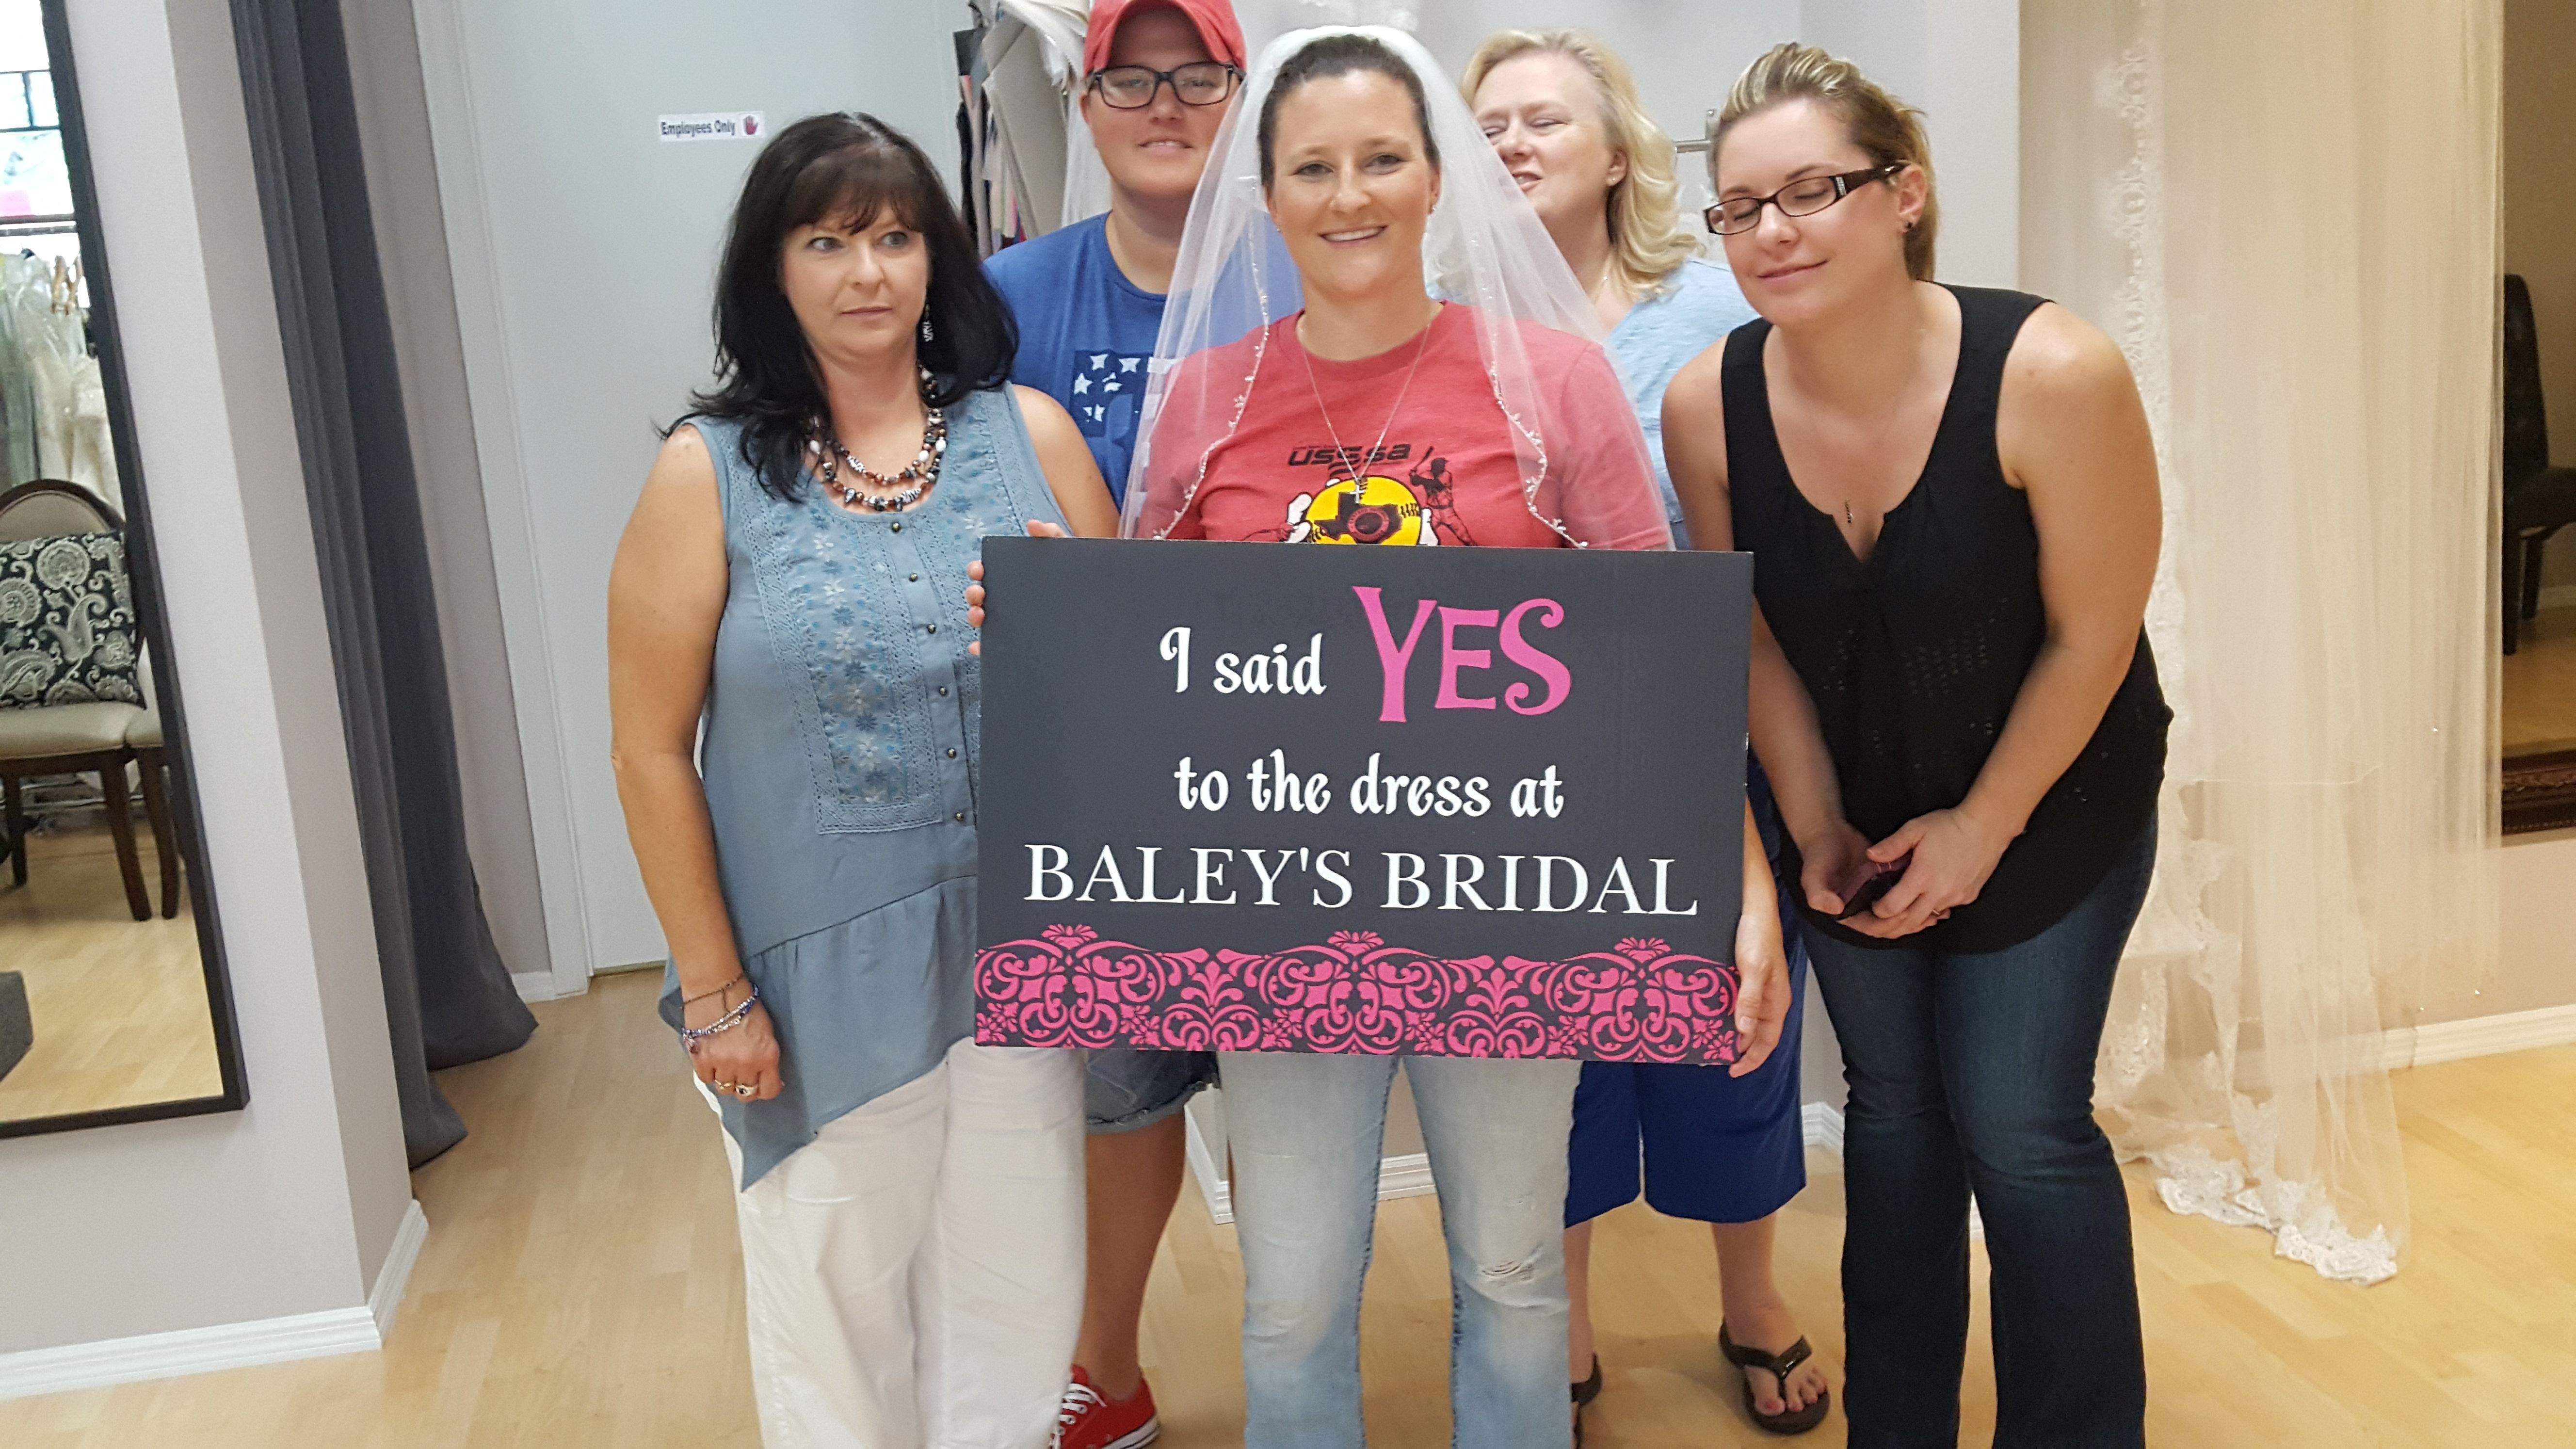 A Very Big Congratulations To Our Bride Ashley Bailey For Finding